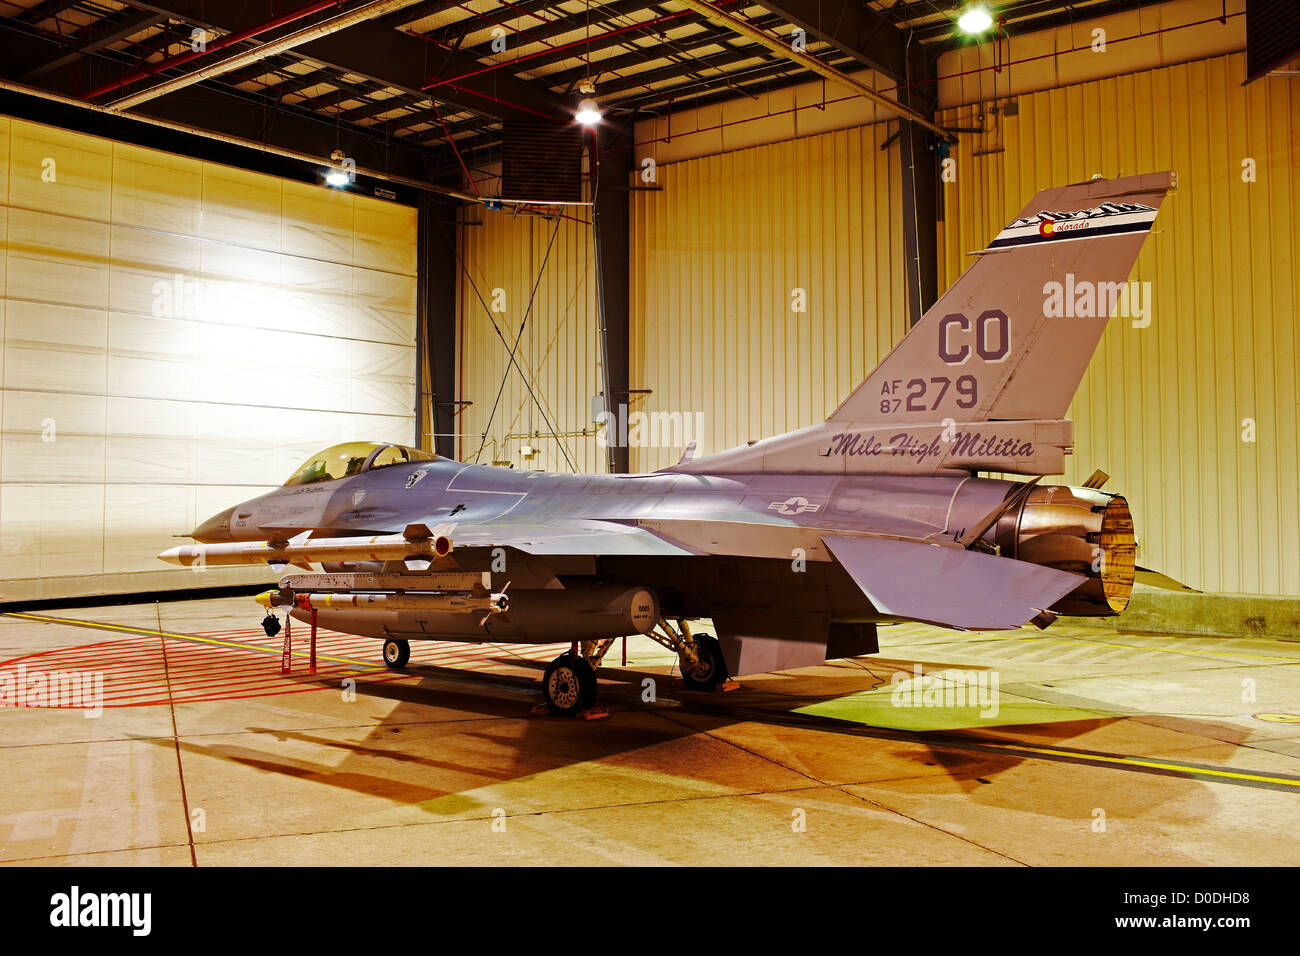 F-16, loaded with live weapons, in alert hangar, Buckley Air Force Base, Colorado - Stock Image